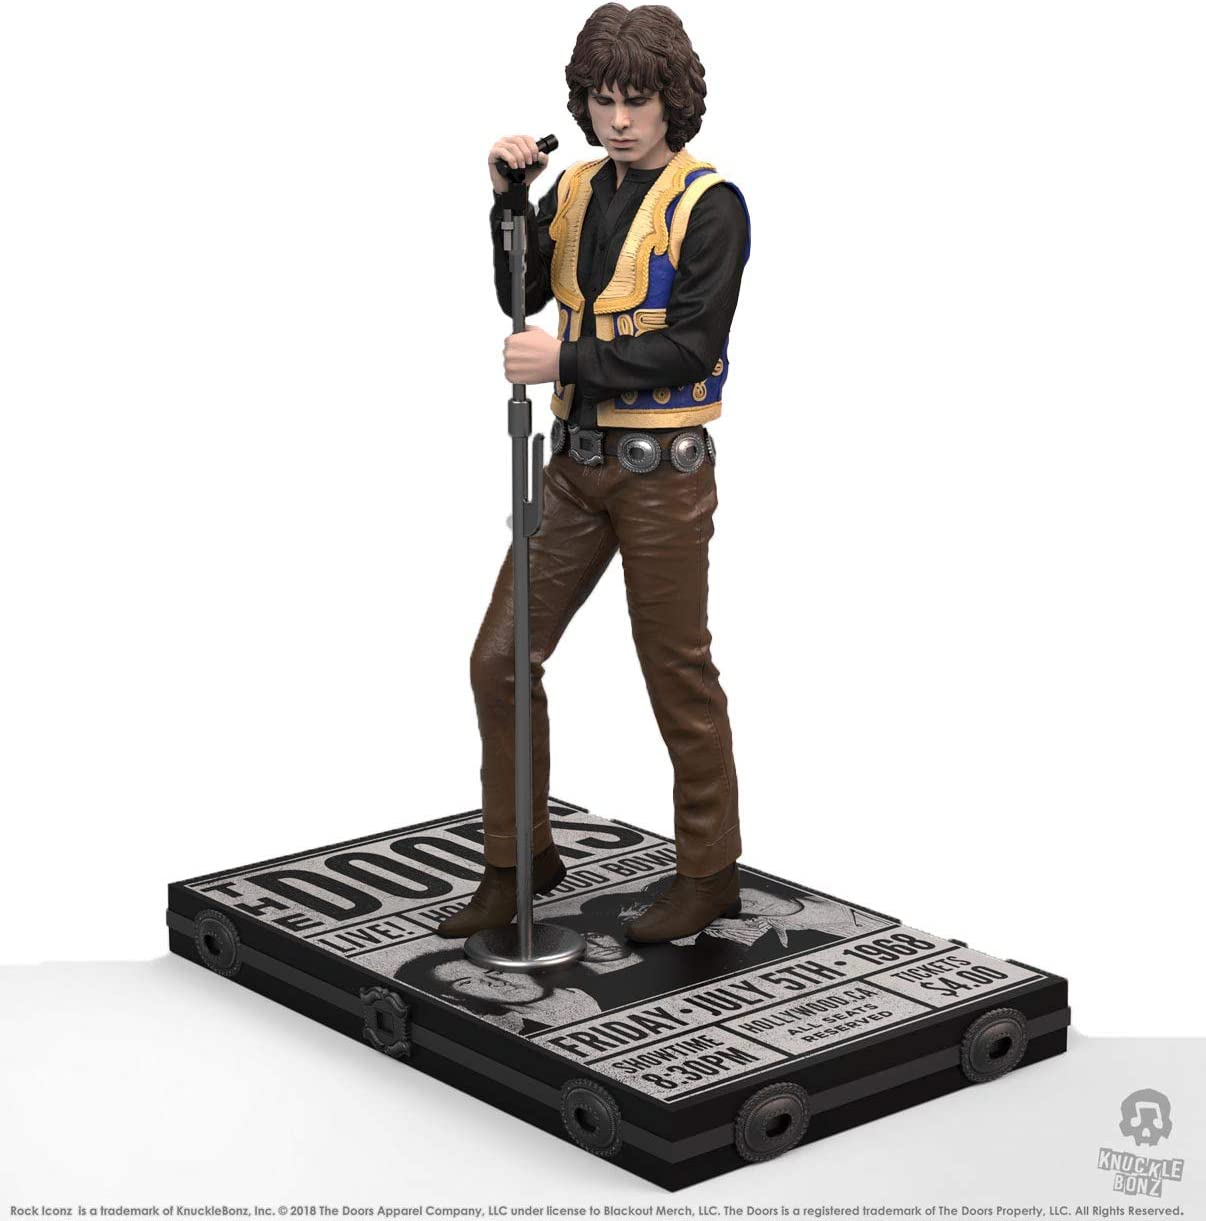 Knucklebonz Jim Morrison (The Doors) Limited Edition Collectible Statue - Rock Iconz, Officially Licensed, Includes CoA